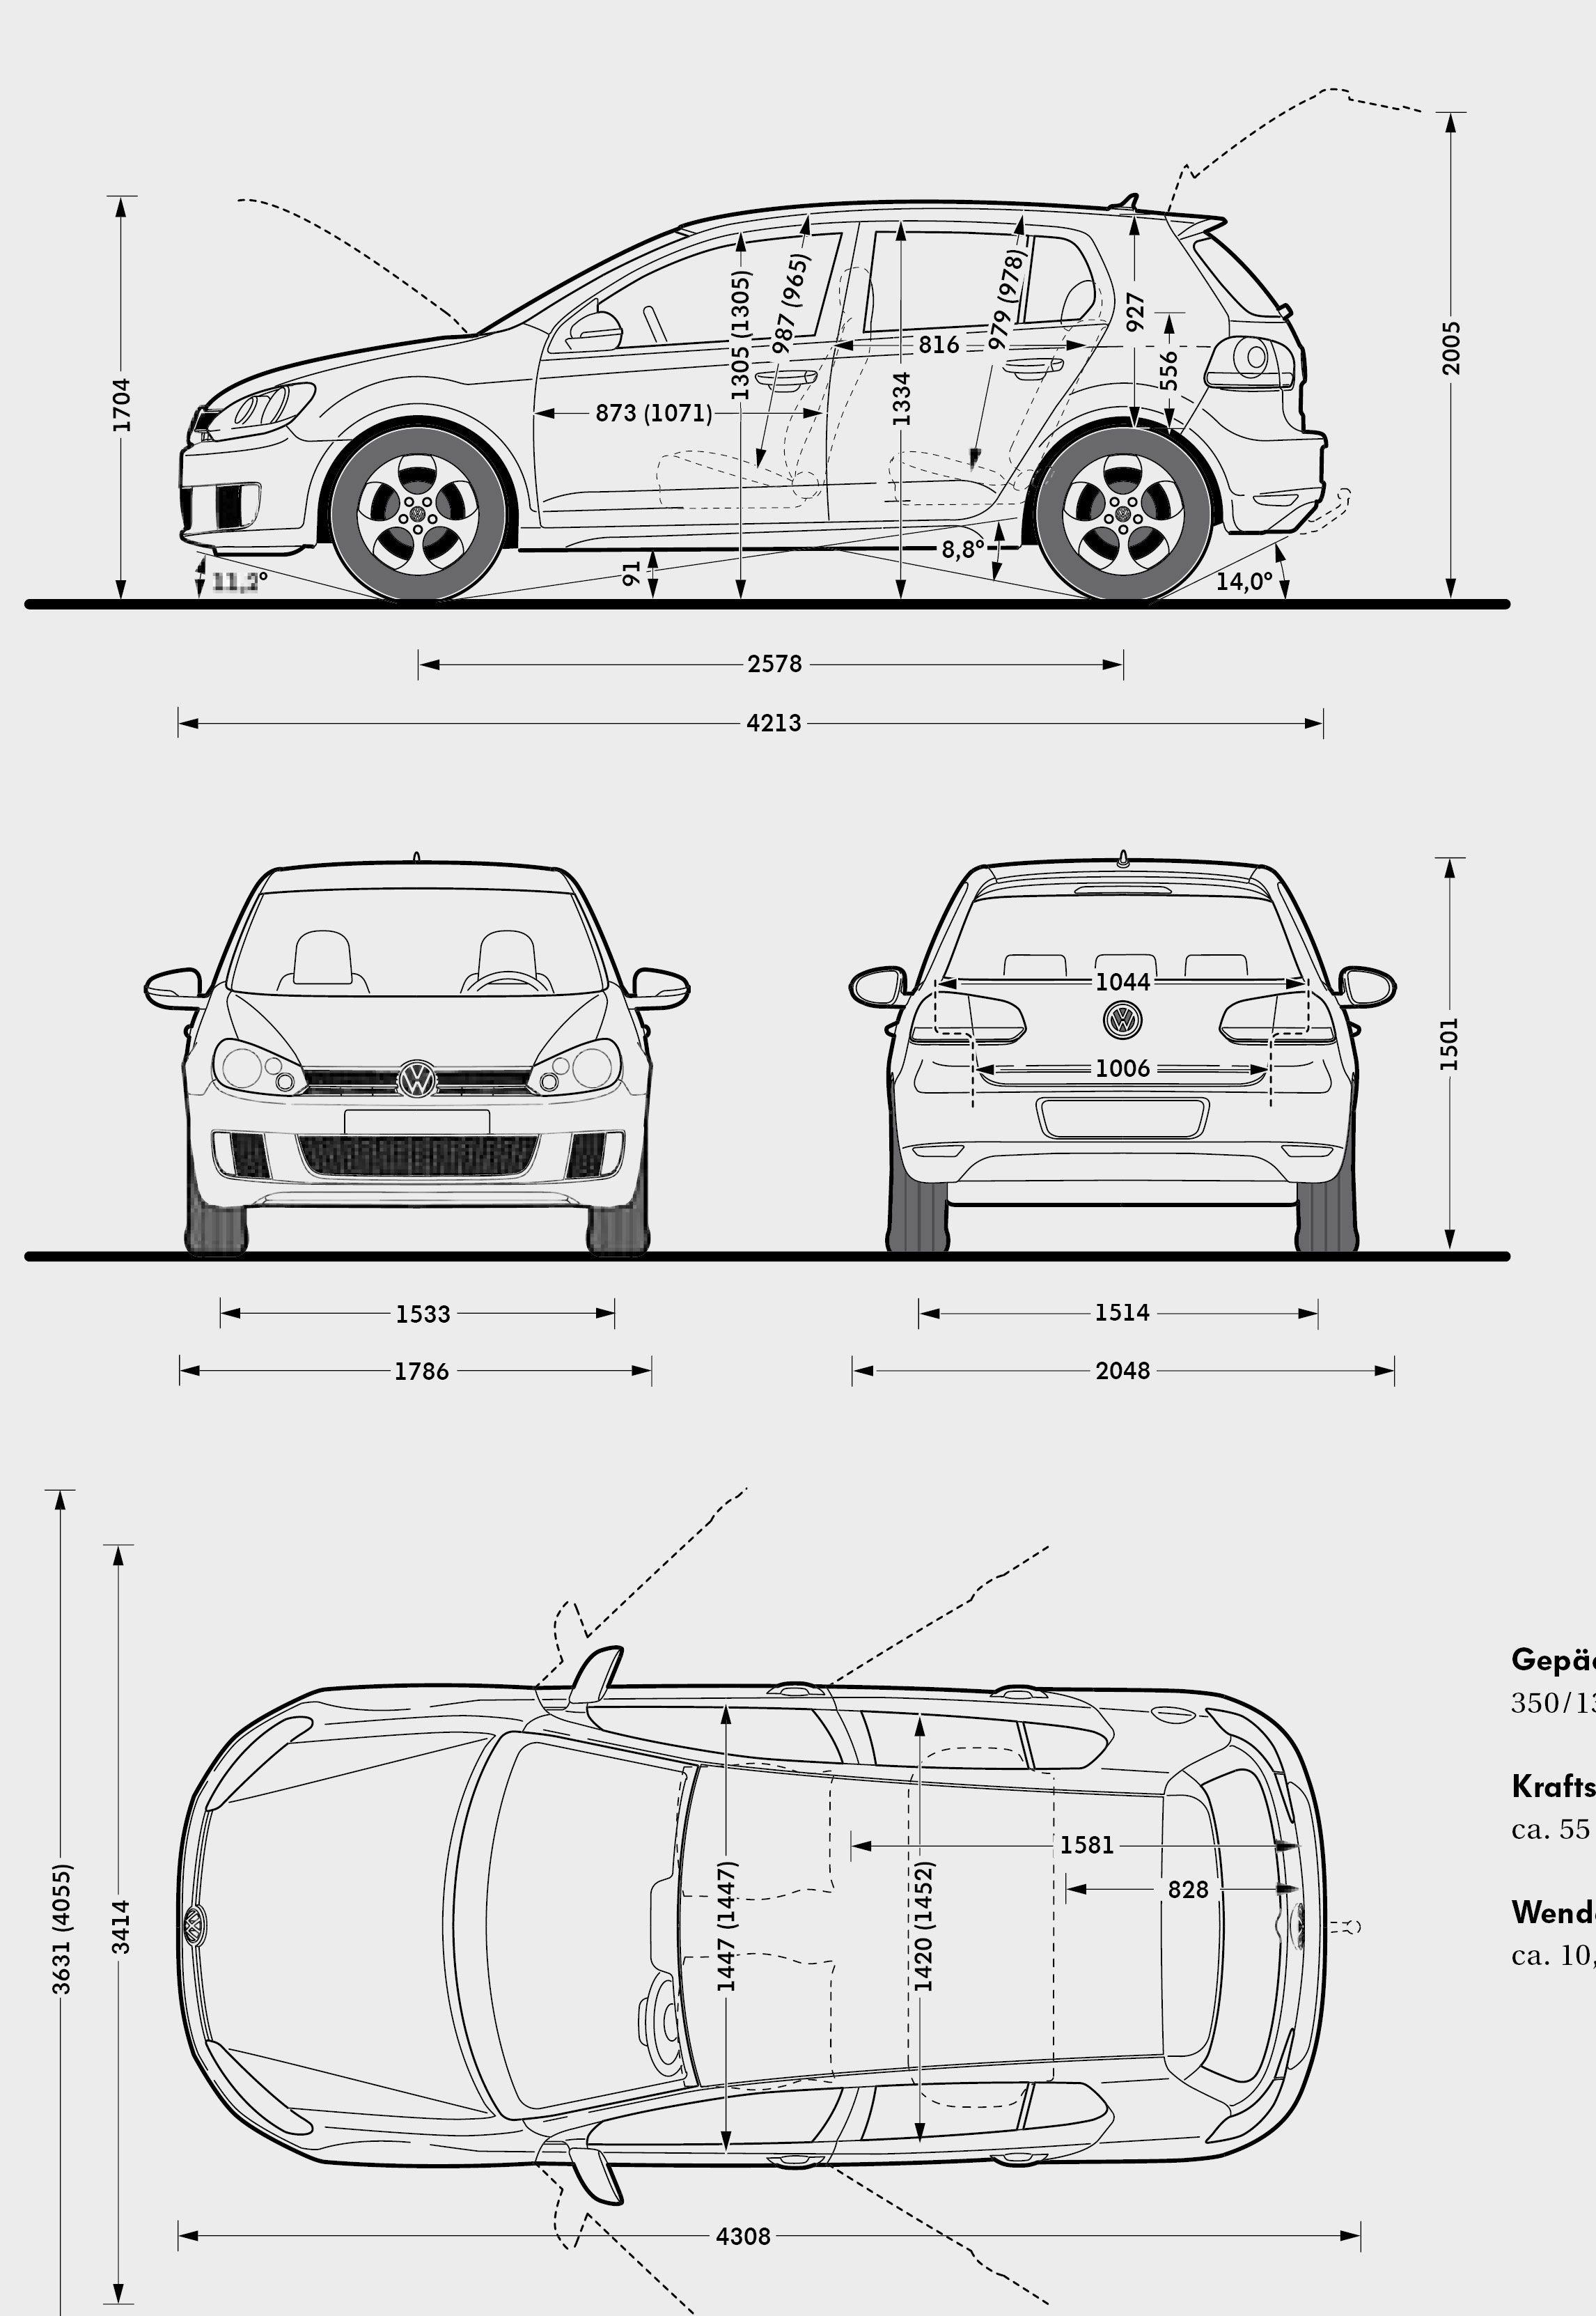 Pin By Surasit Chandhrathip On Blueprints T Cars Bugatti